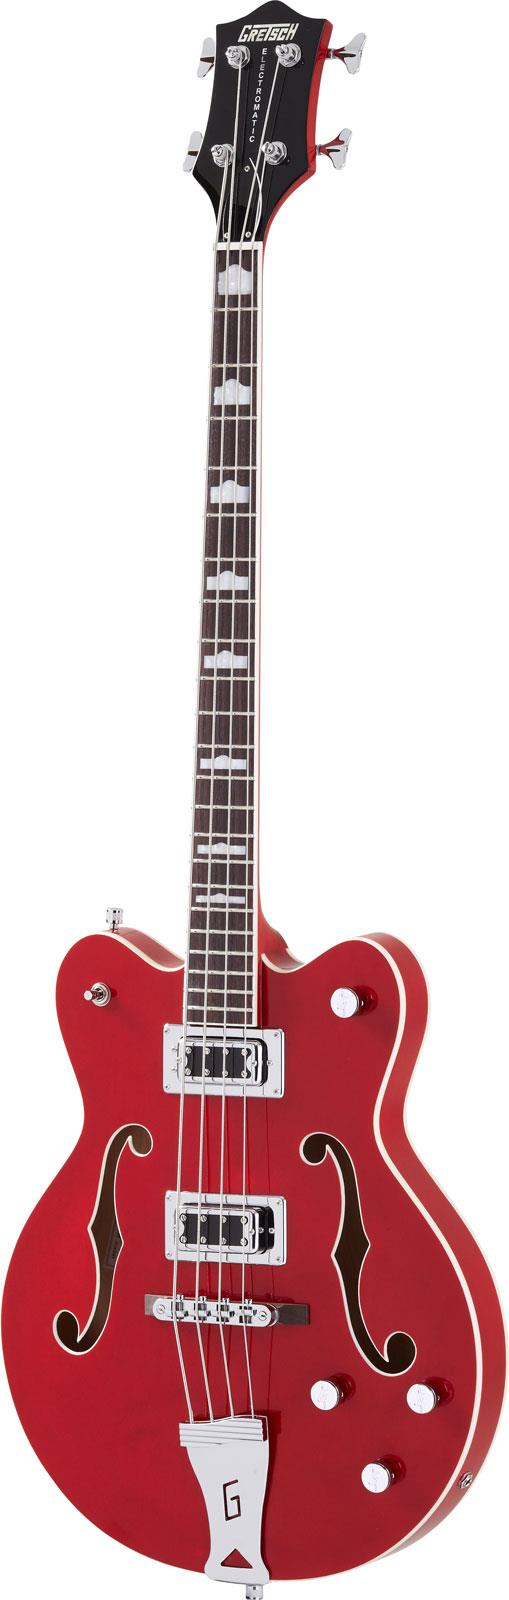 Gretsch G5442BDC Electromatic Hollowbody Short Scale Bass Red